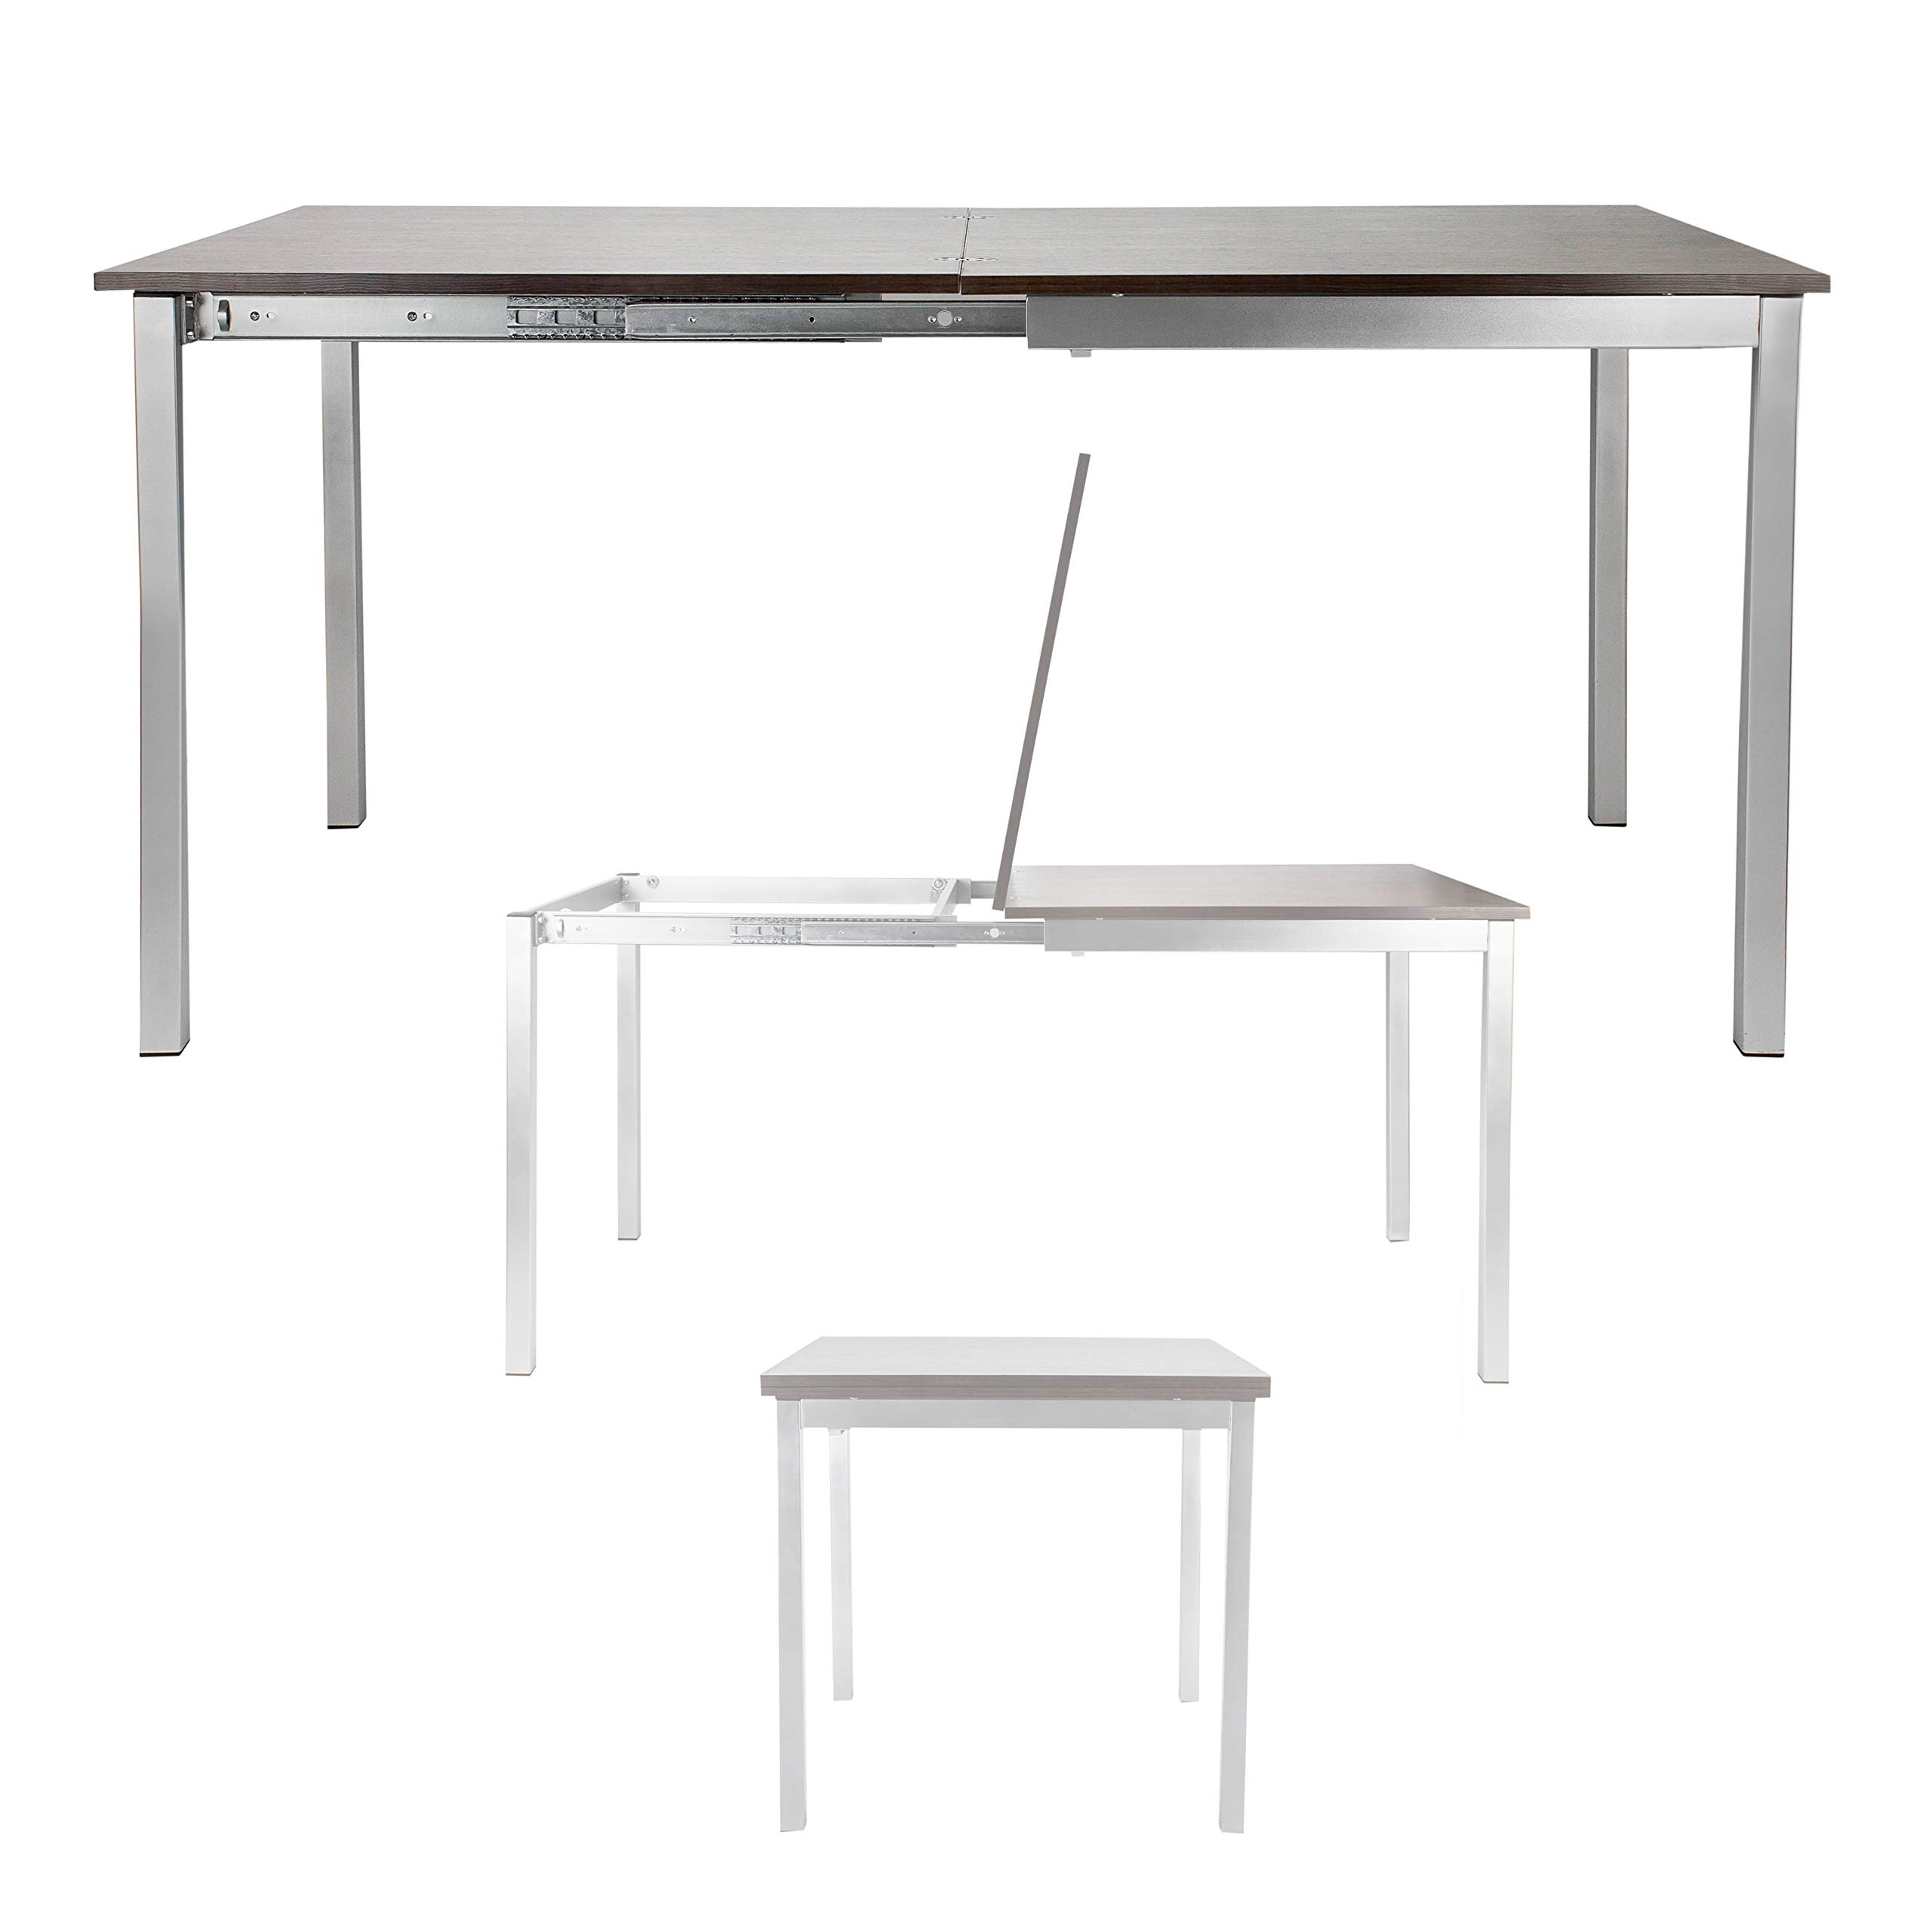 SpaceMaster Corner Housewares Easy Slide Dining Table, One Size by SpaceMaster